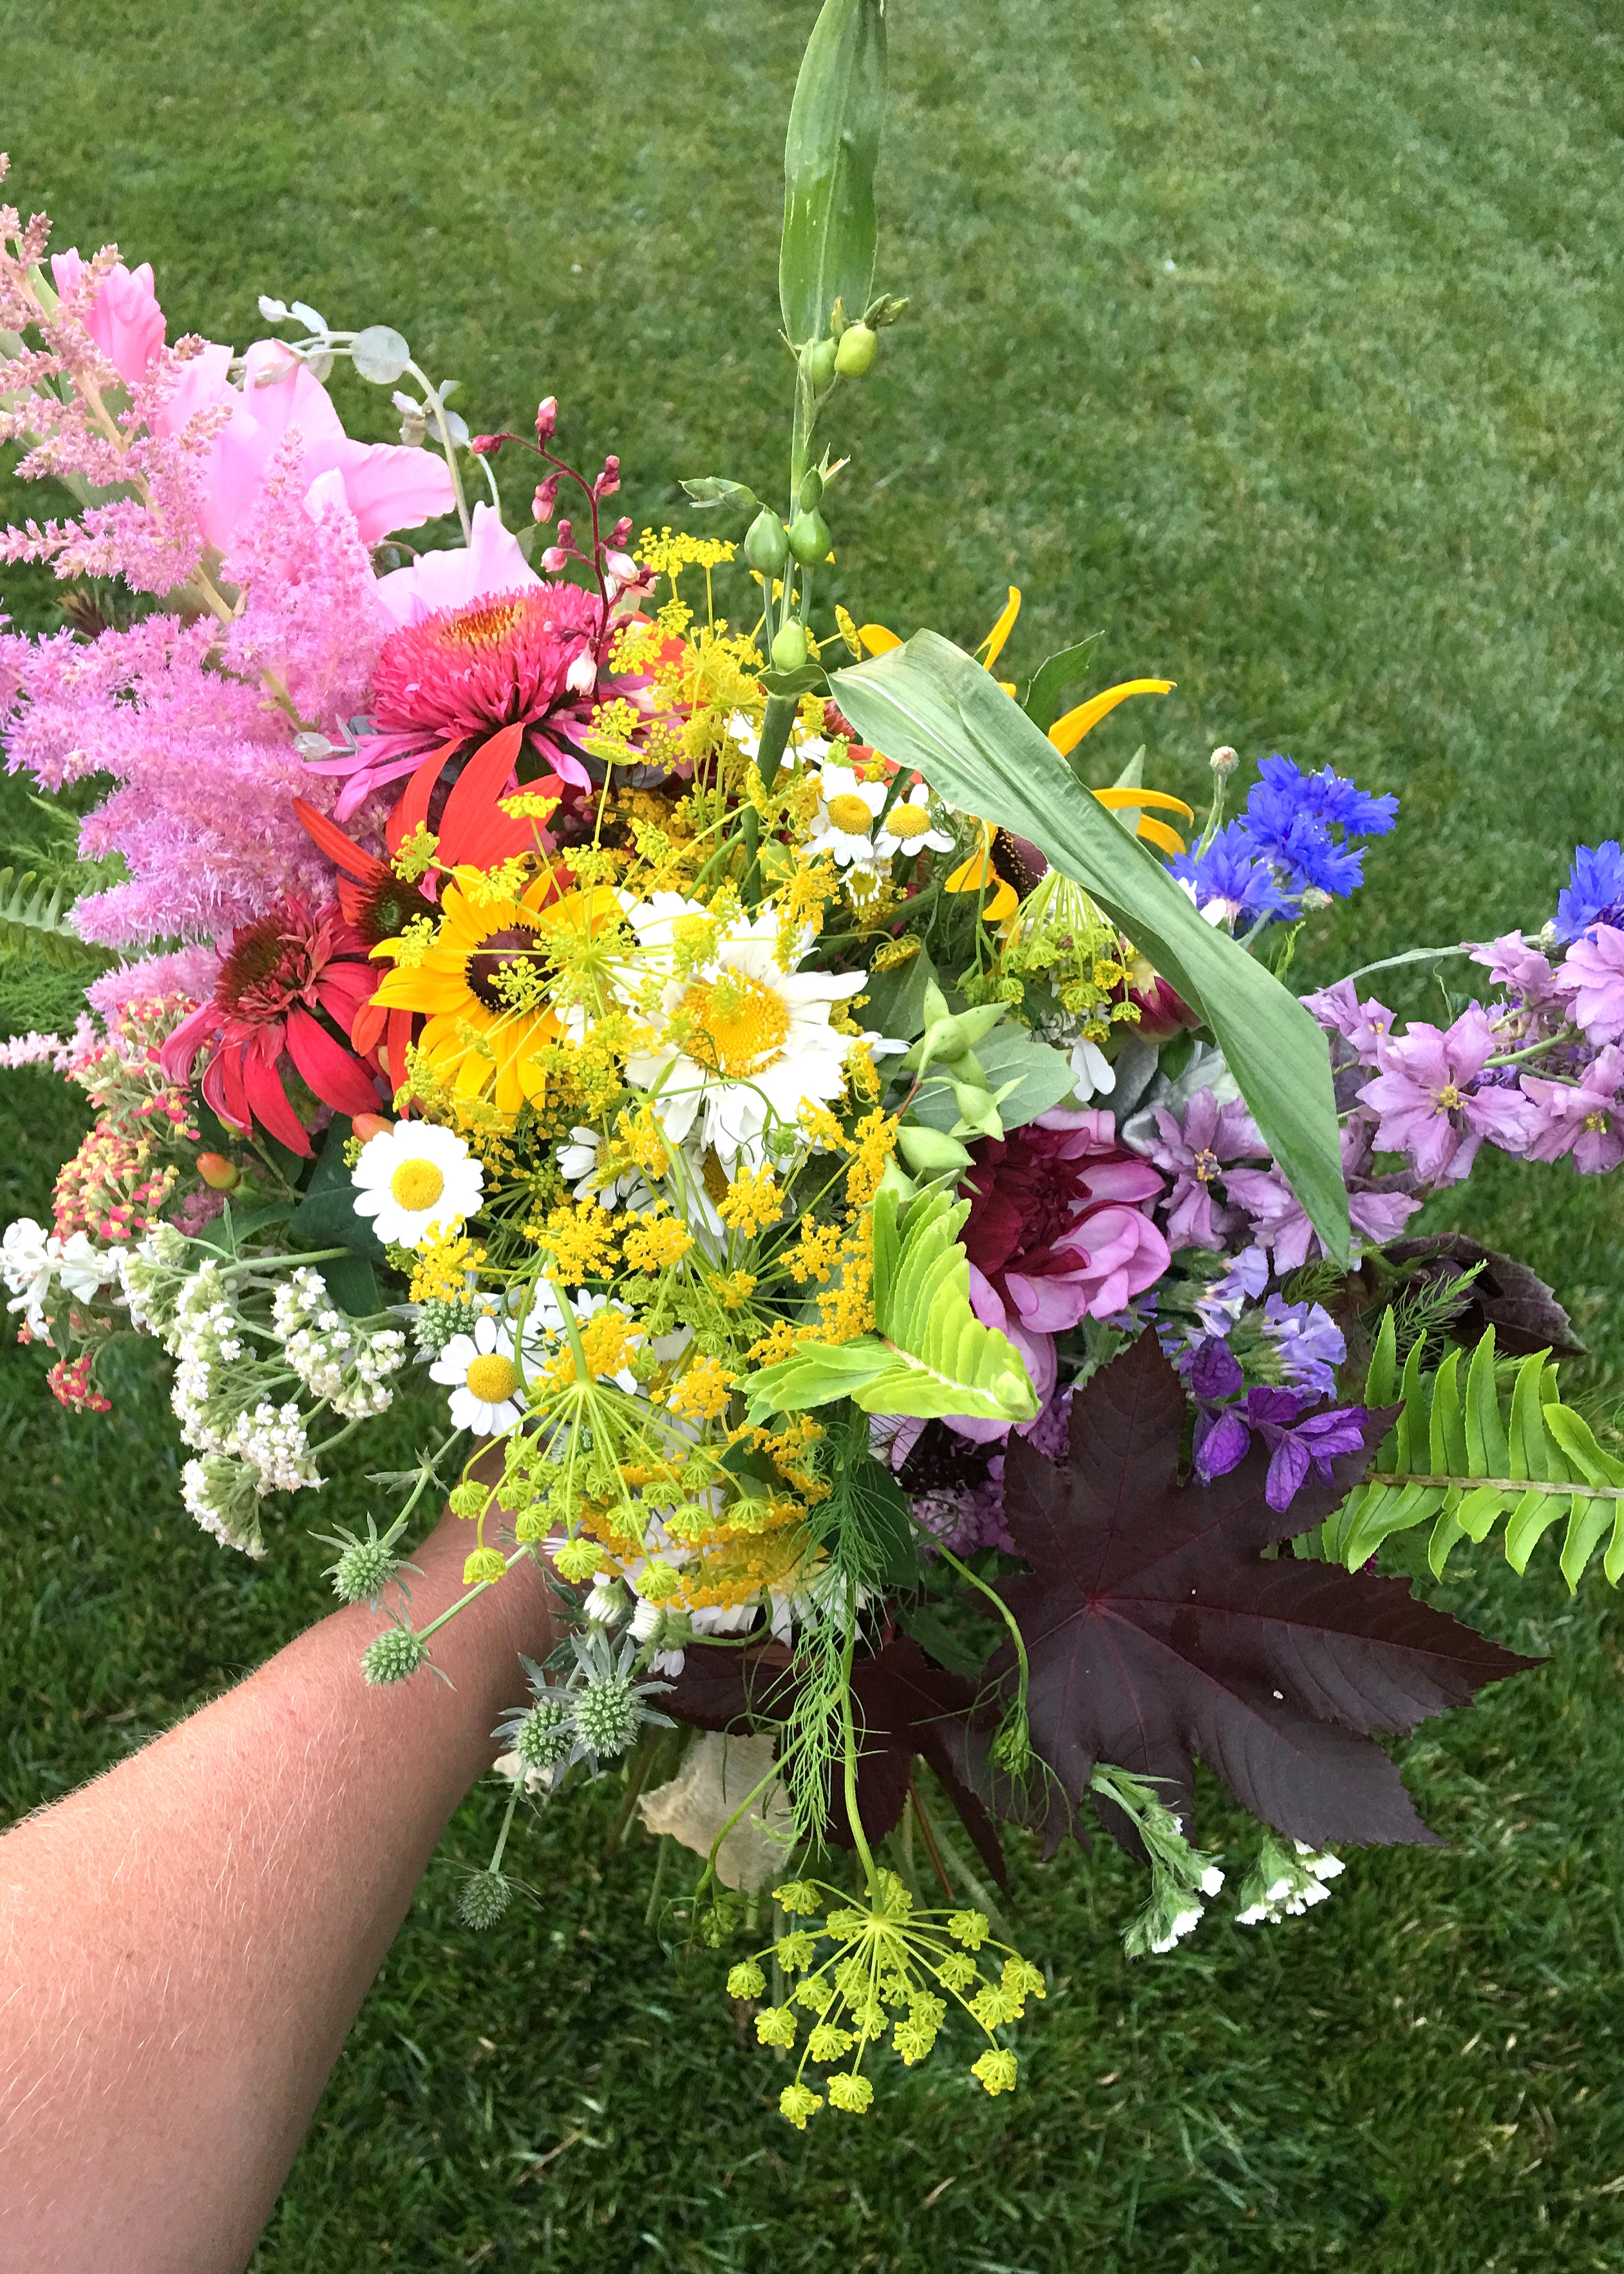 Making a Rainbow Bouquet